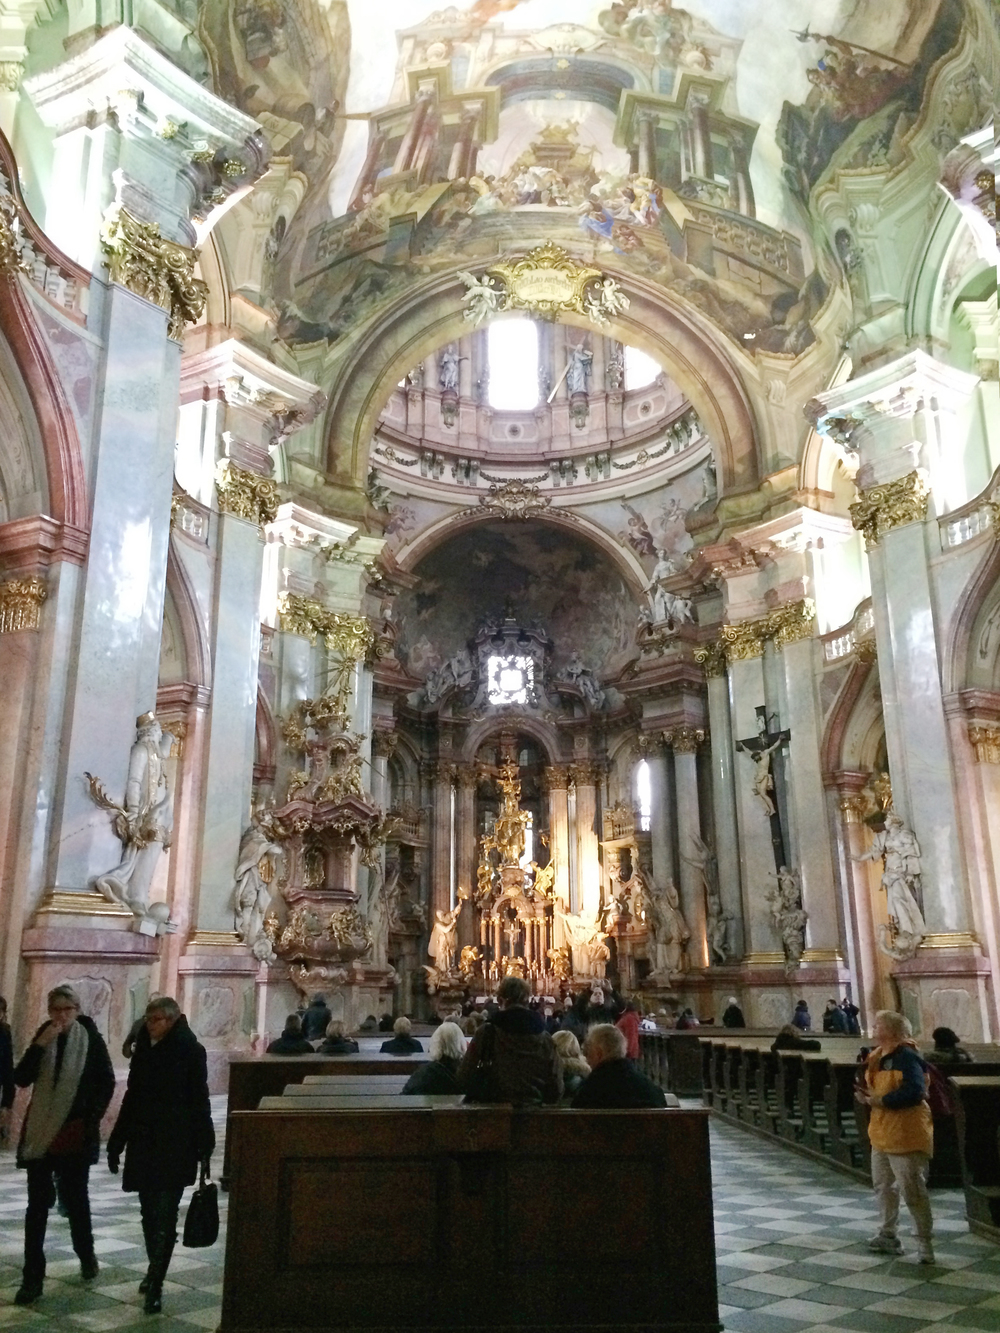 Inside the St. Nicholas baroque church. Wow.